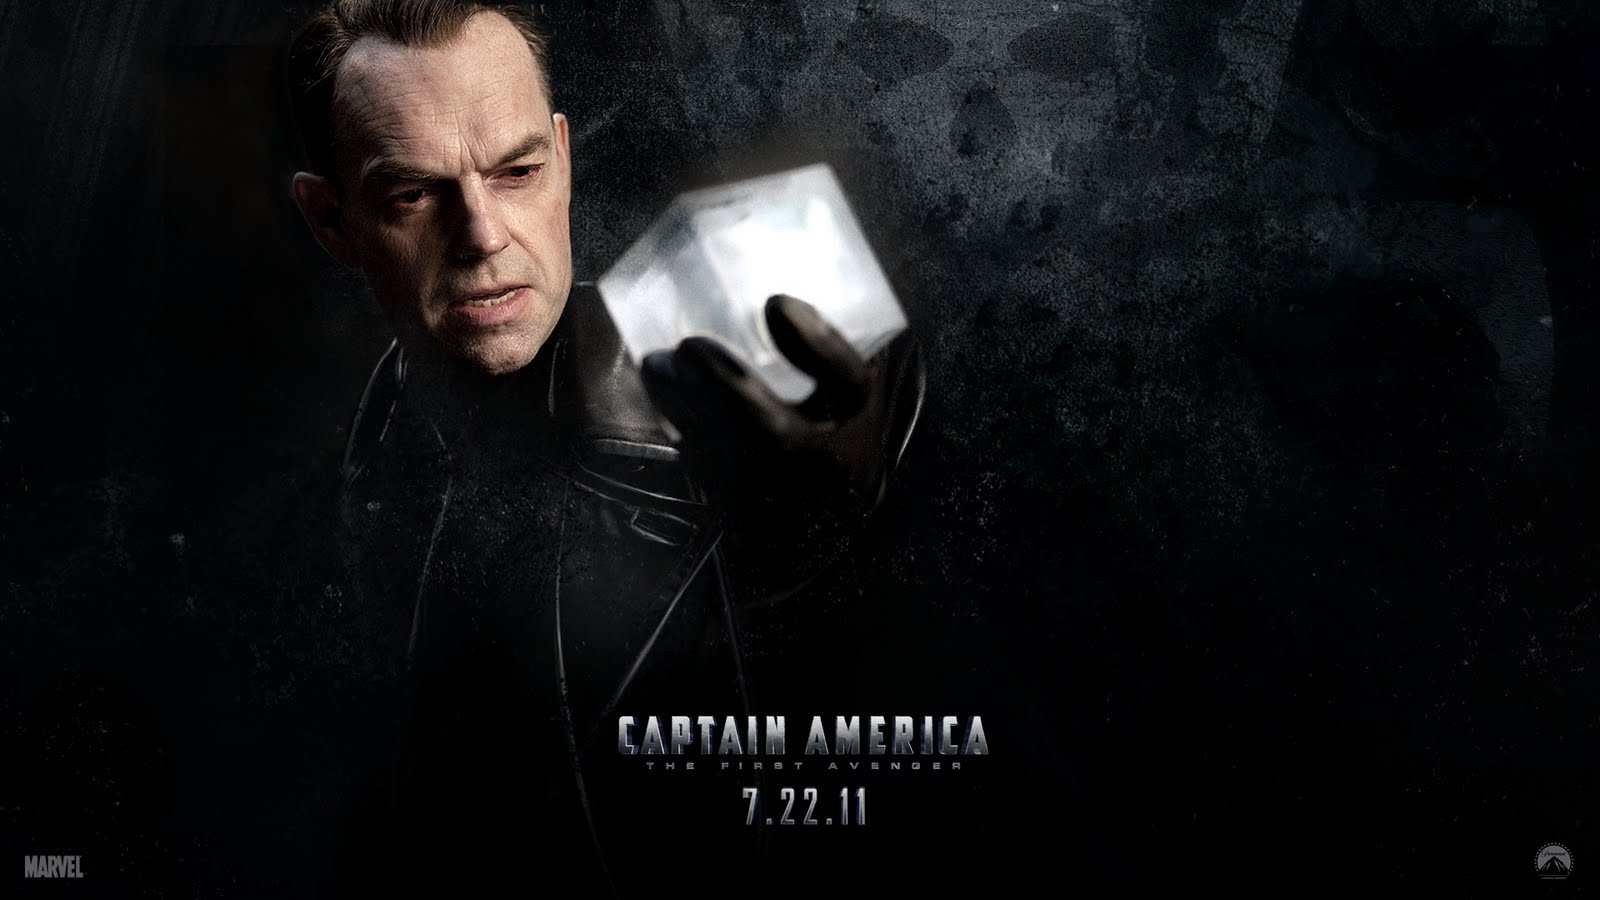 http://2.bp.blogspot.com/-4u7-3z-doX4/TjQ4osRVs-I/AAAAAAAAB5U/s4ovBRxRlNw/s1600/Hugo_Weaving_in_Captain_America%2B_The_First_Avenger_Wallpaper_5_1024.jpg